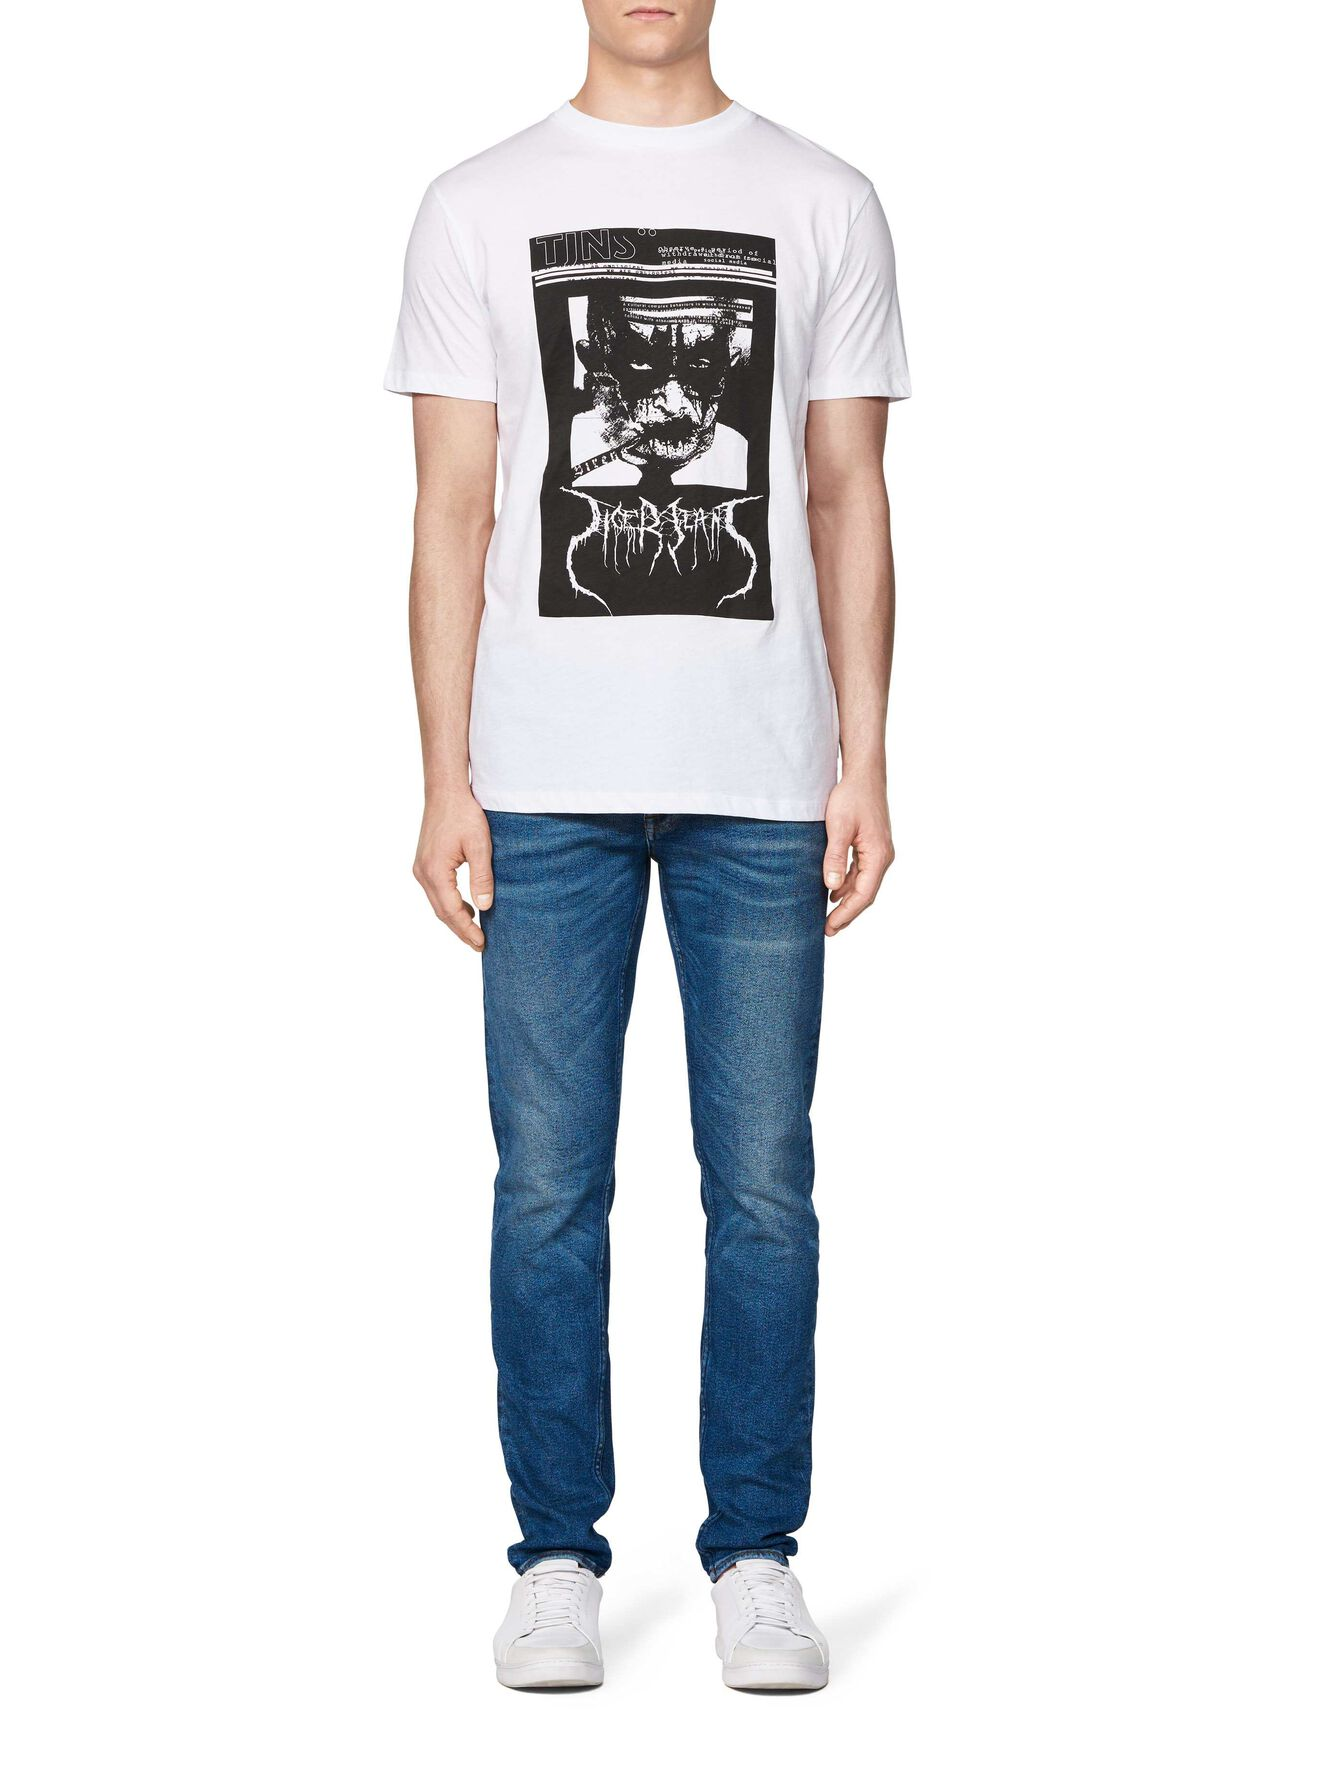 FLEEK T-SHIRT in White from Tiger of Sweden